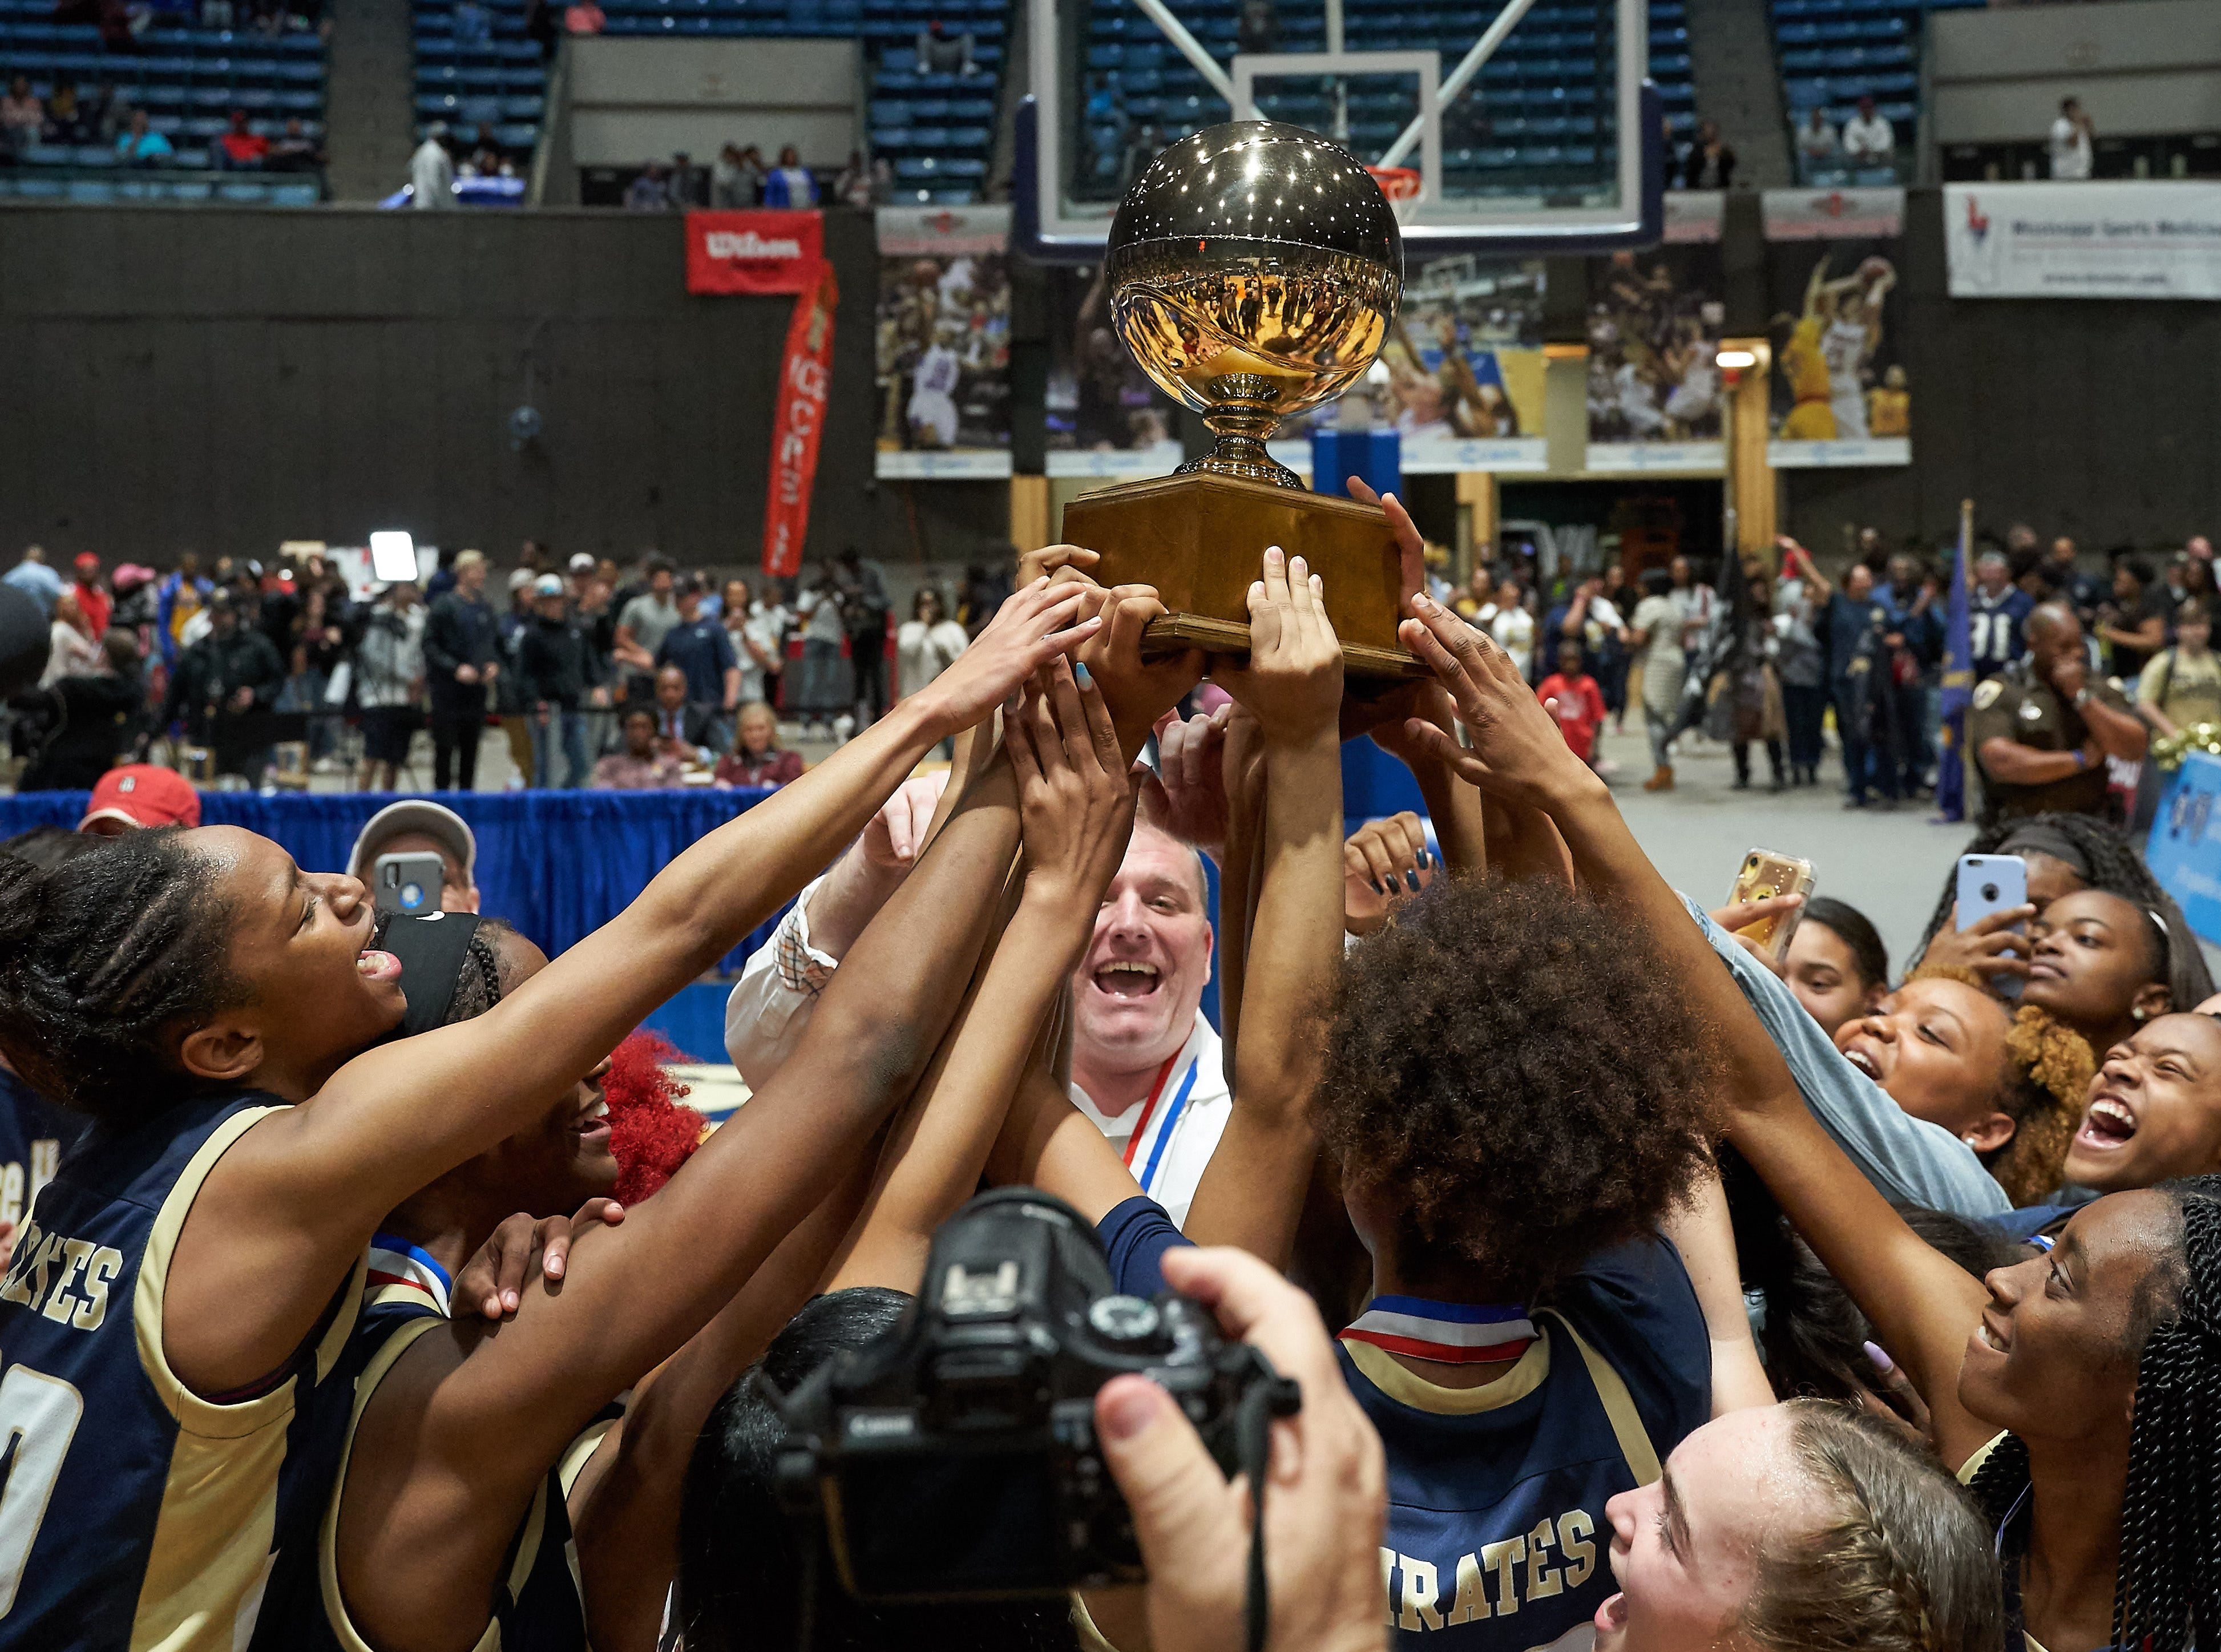 Pearl players and coaches hoist the trophy following the Lady Pirates 59-48 win over Terry in the MHSAA 6A Girls Basketball Championship Finals held at the Mississippi Coliseum in Jackson, MS, Saturday March 9th, 2019.(Bob Smith)